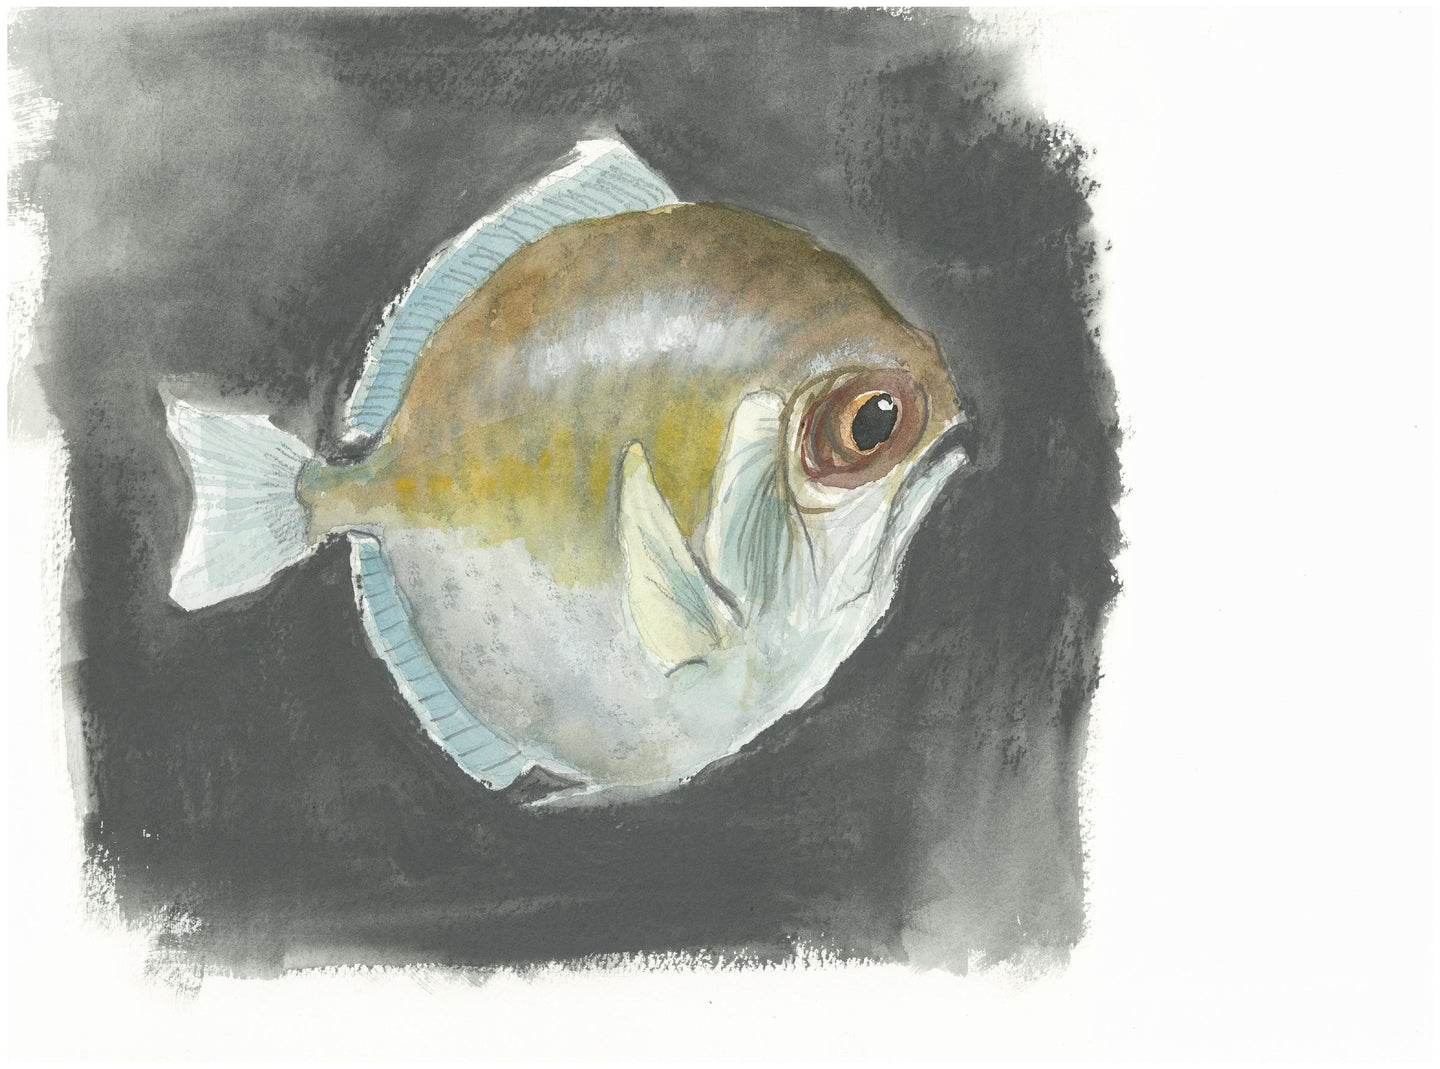 Sulky fish - Isabelle Issaverdens